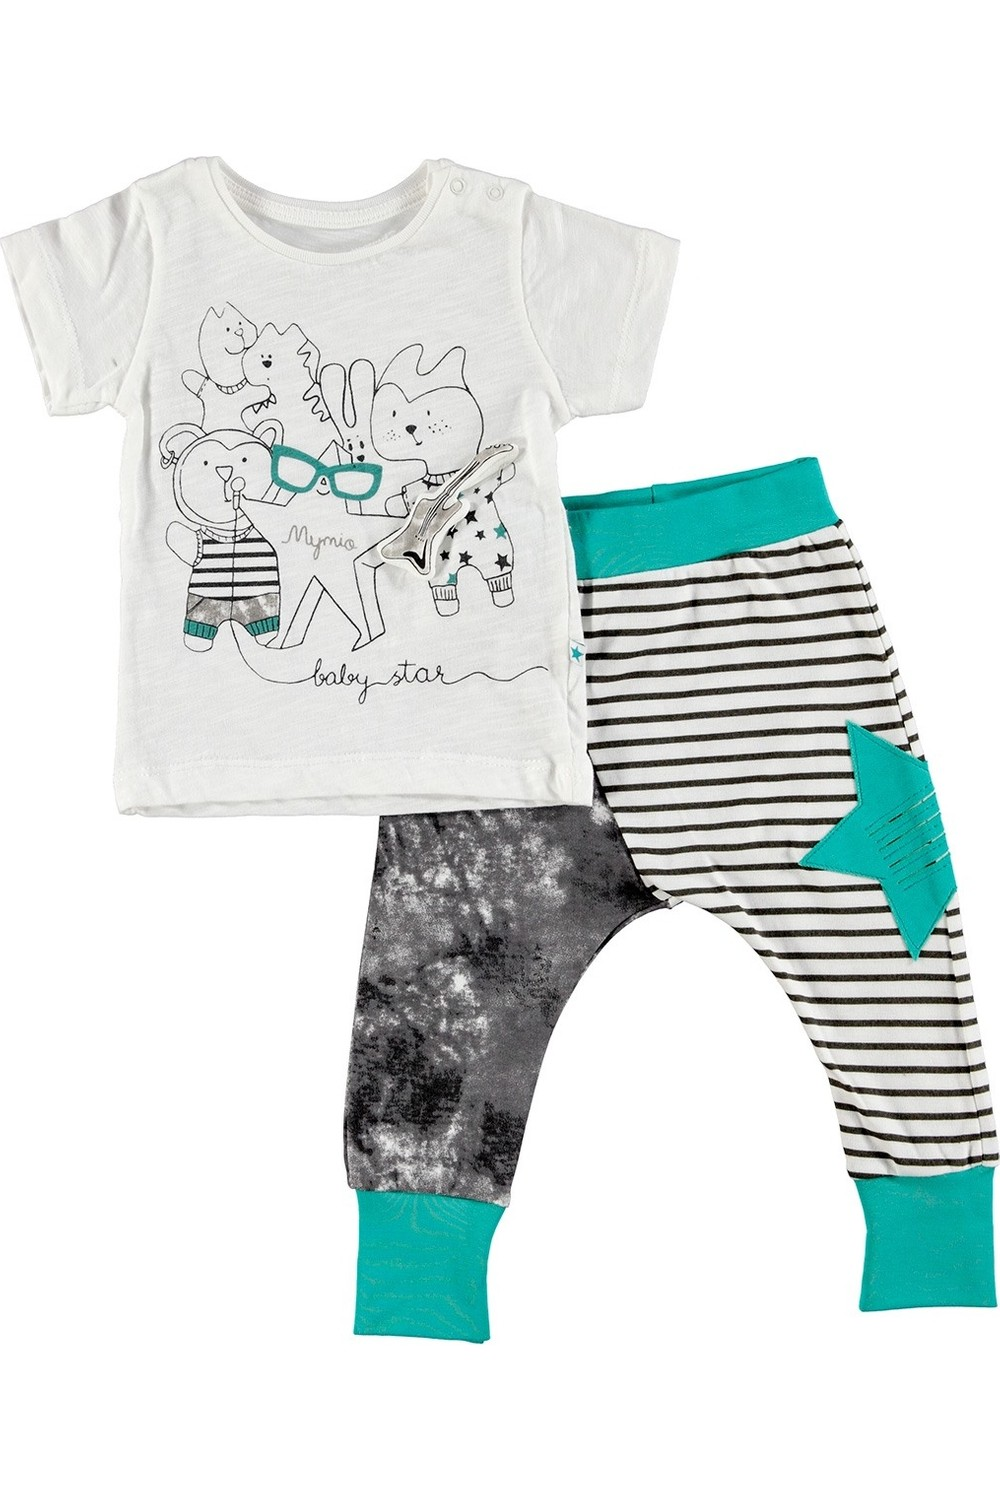 Mymio Kids Clothes Set